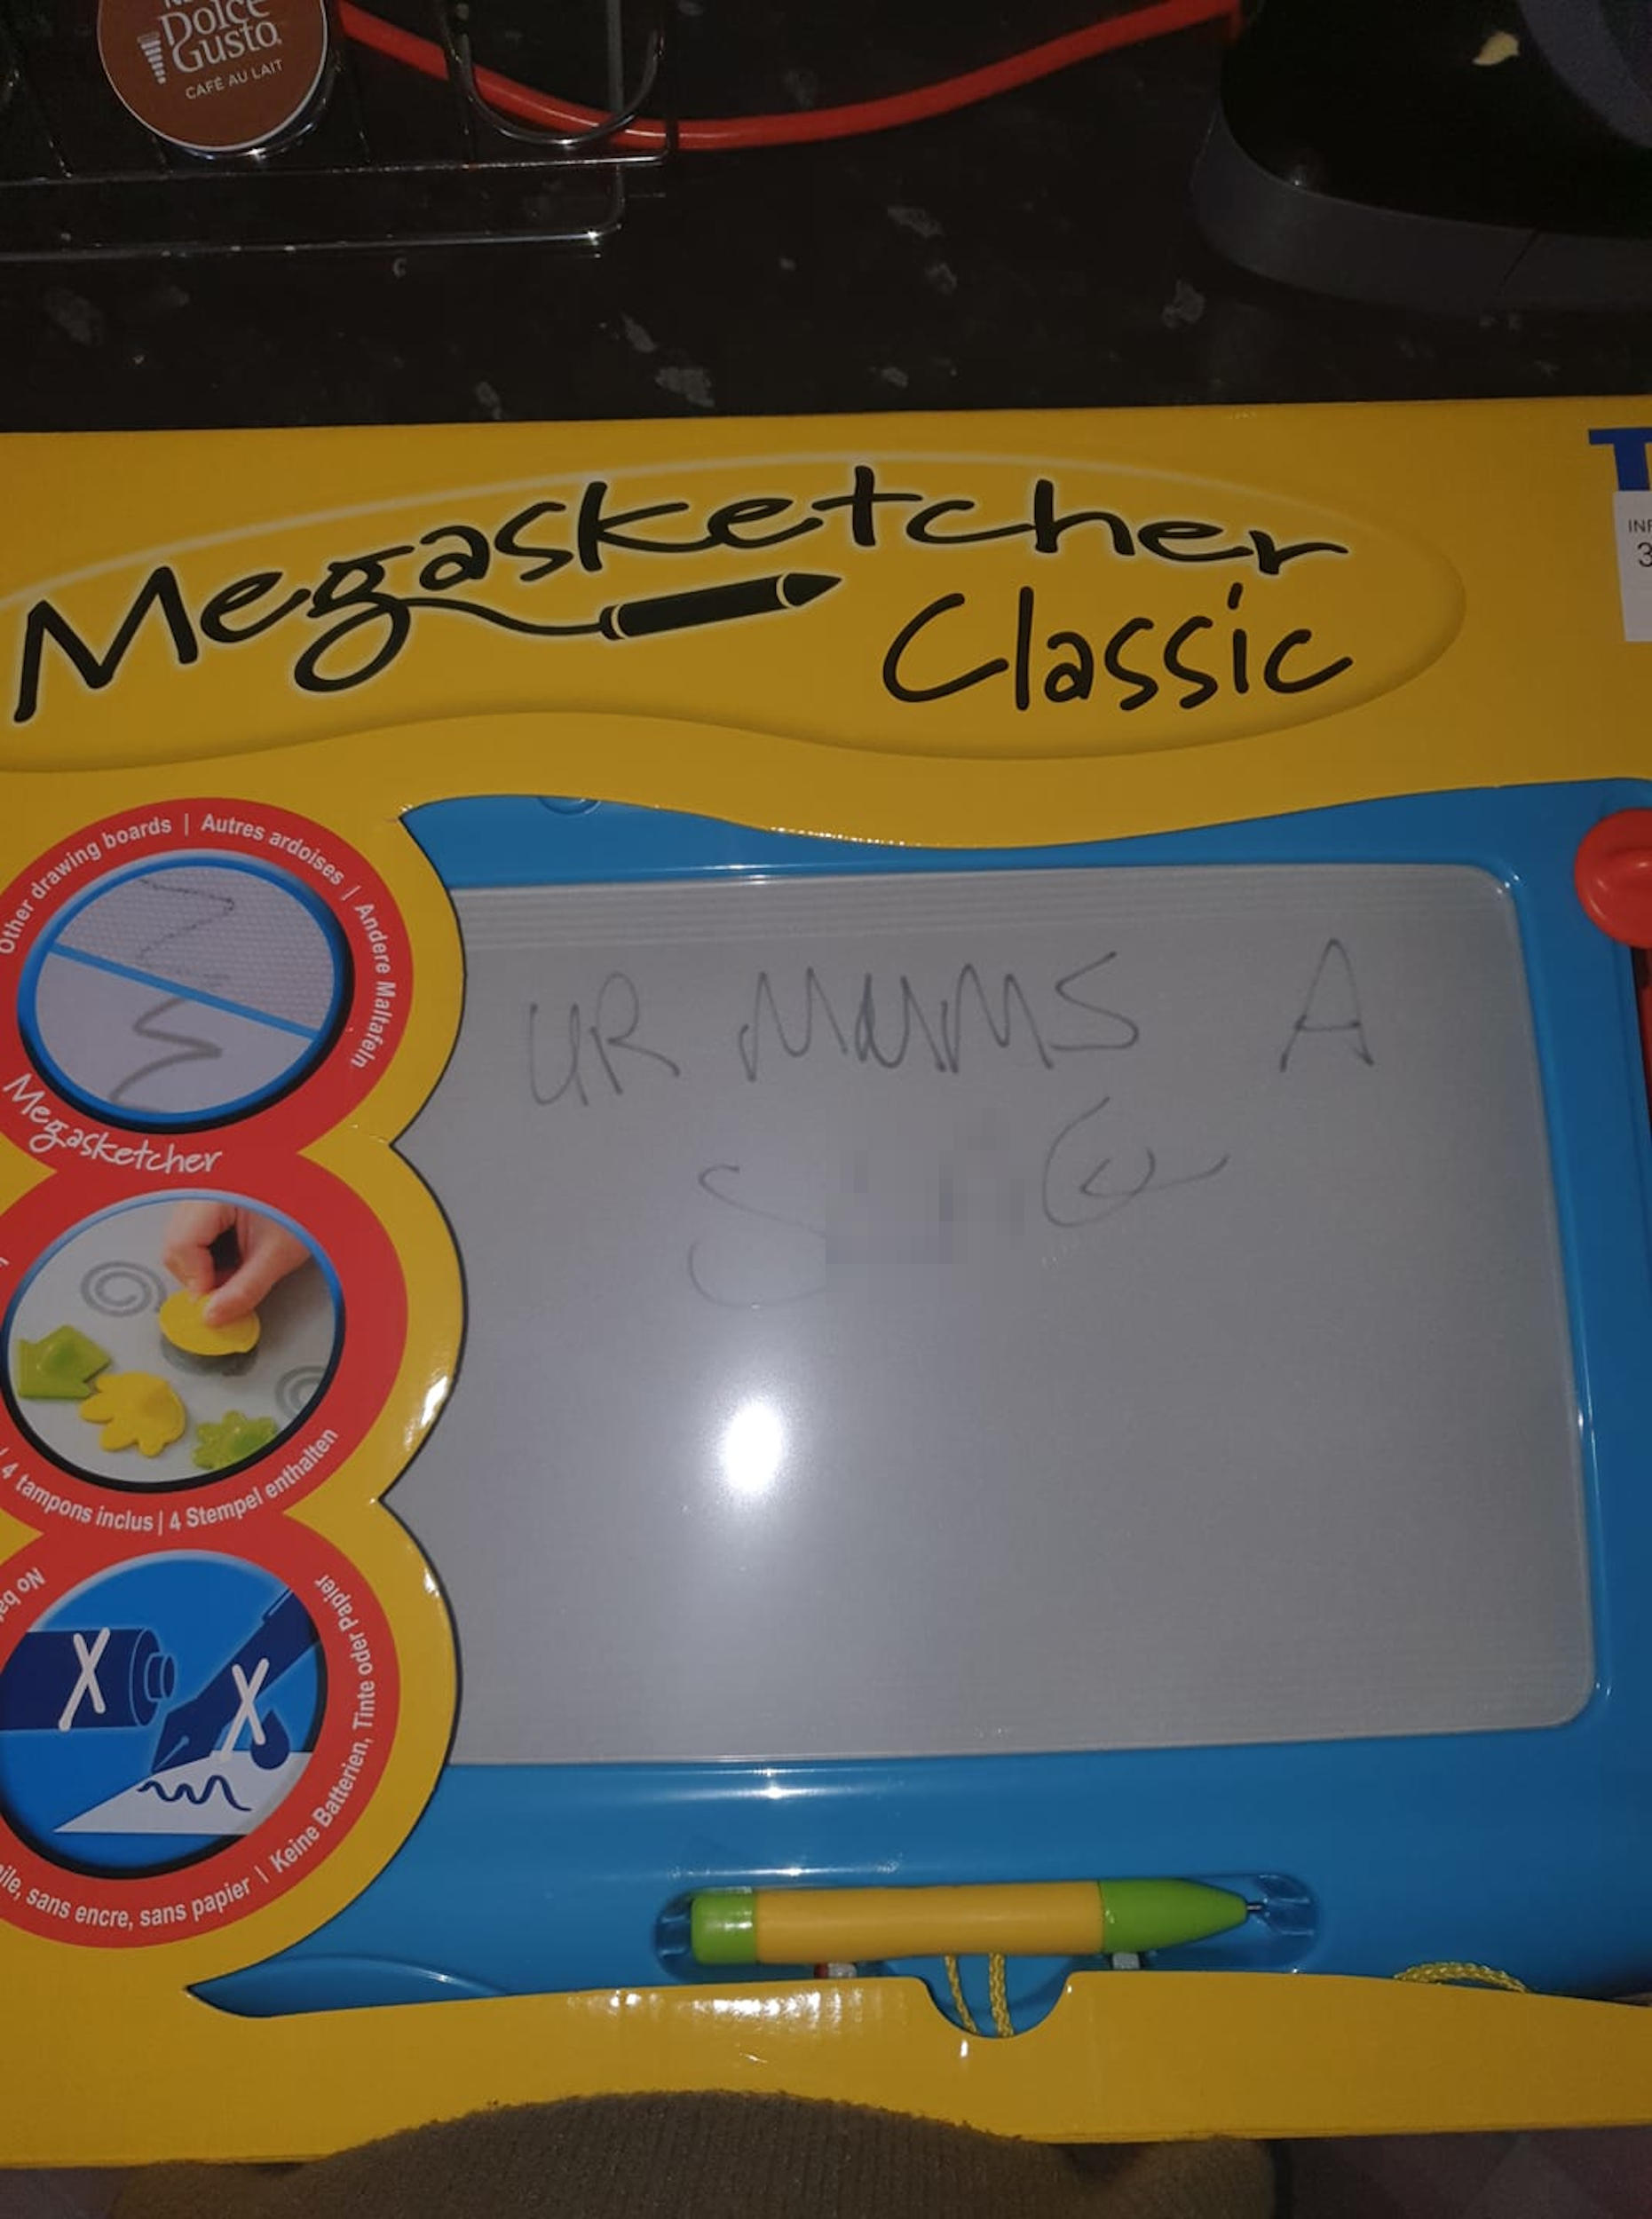 Megasketcher toy